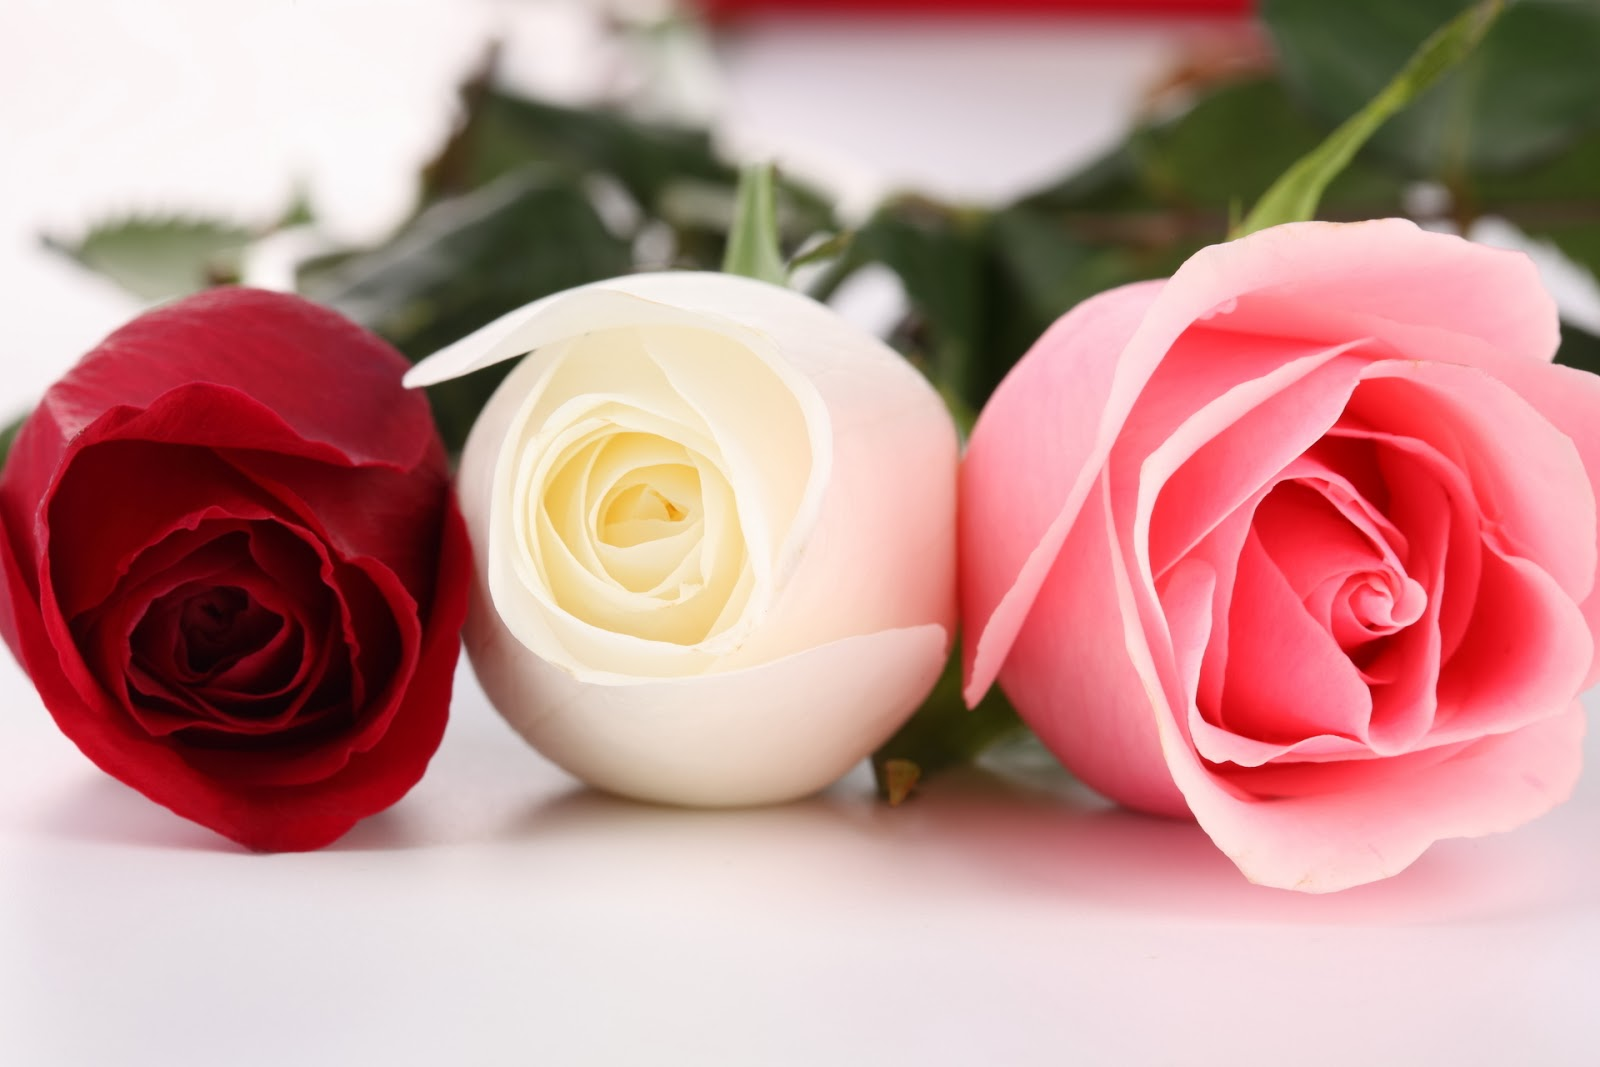 White And Red Rose Meaning